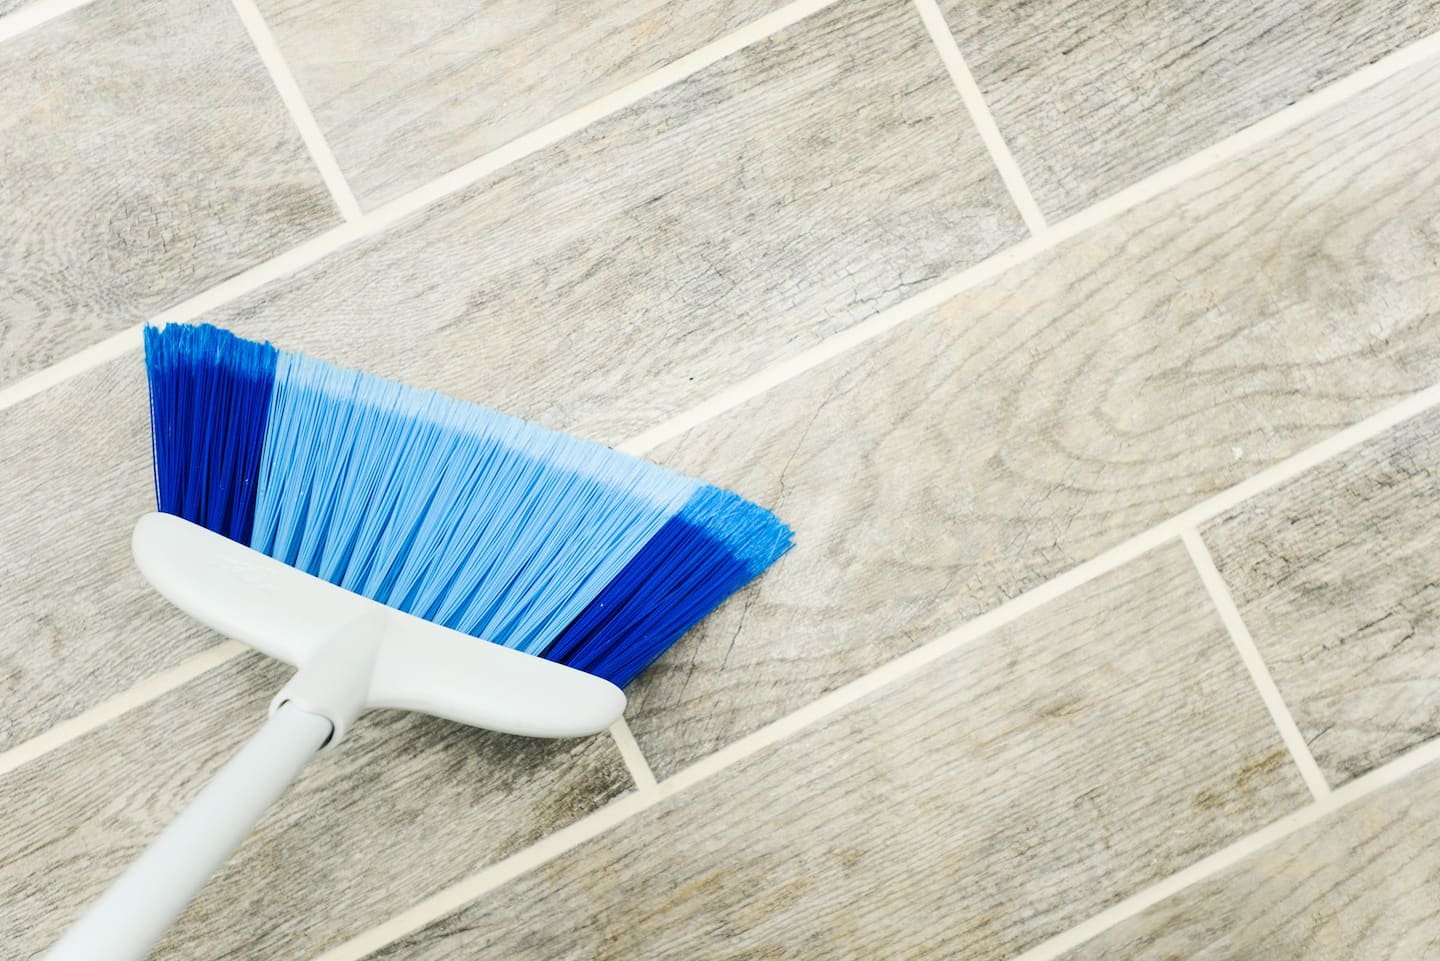 5 house cleaning secrets for walls and floors | angie's list